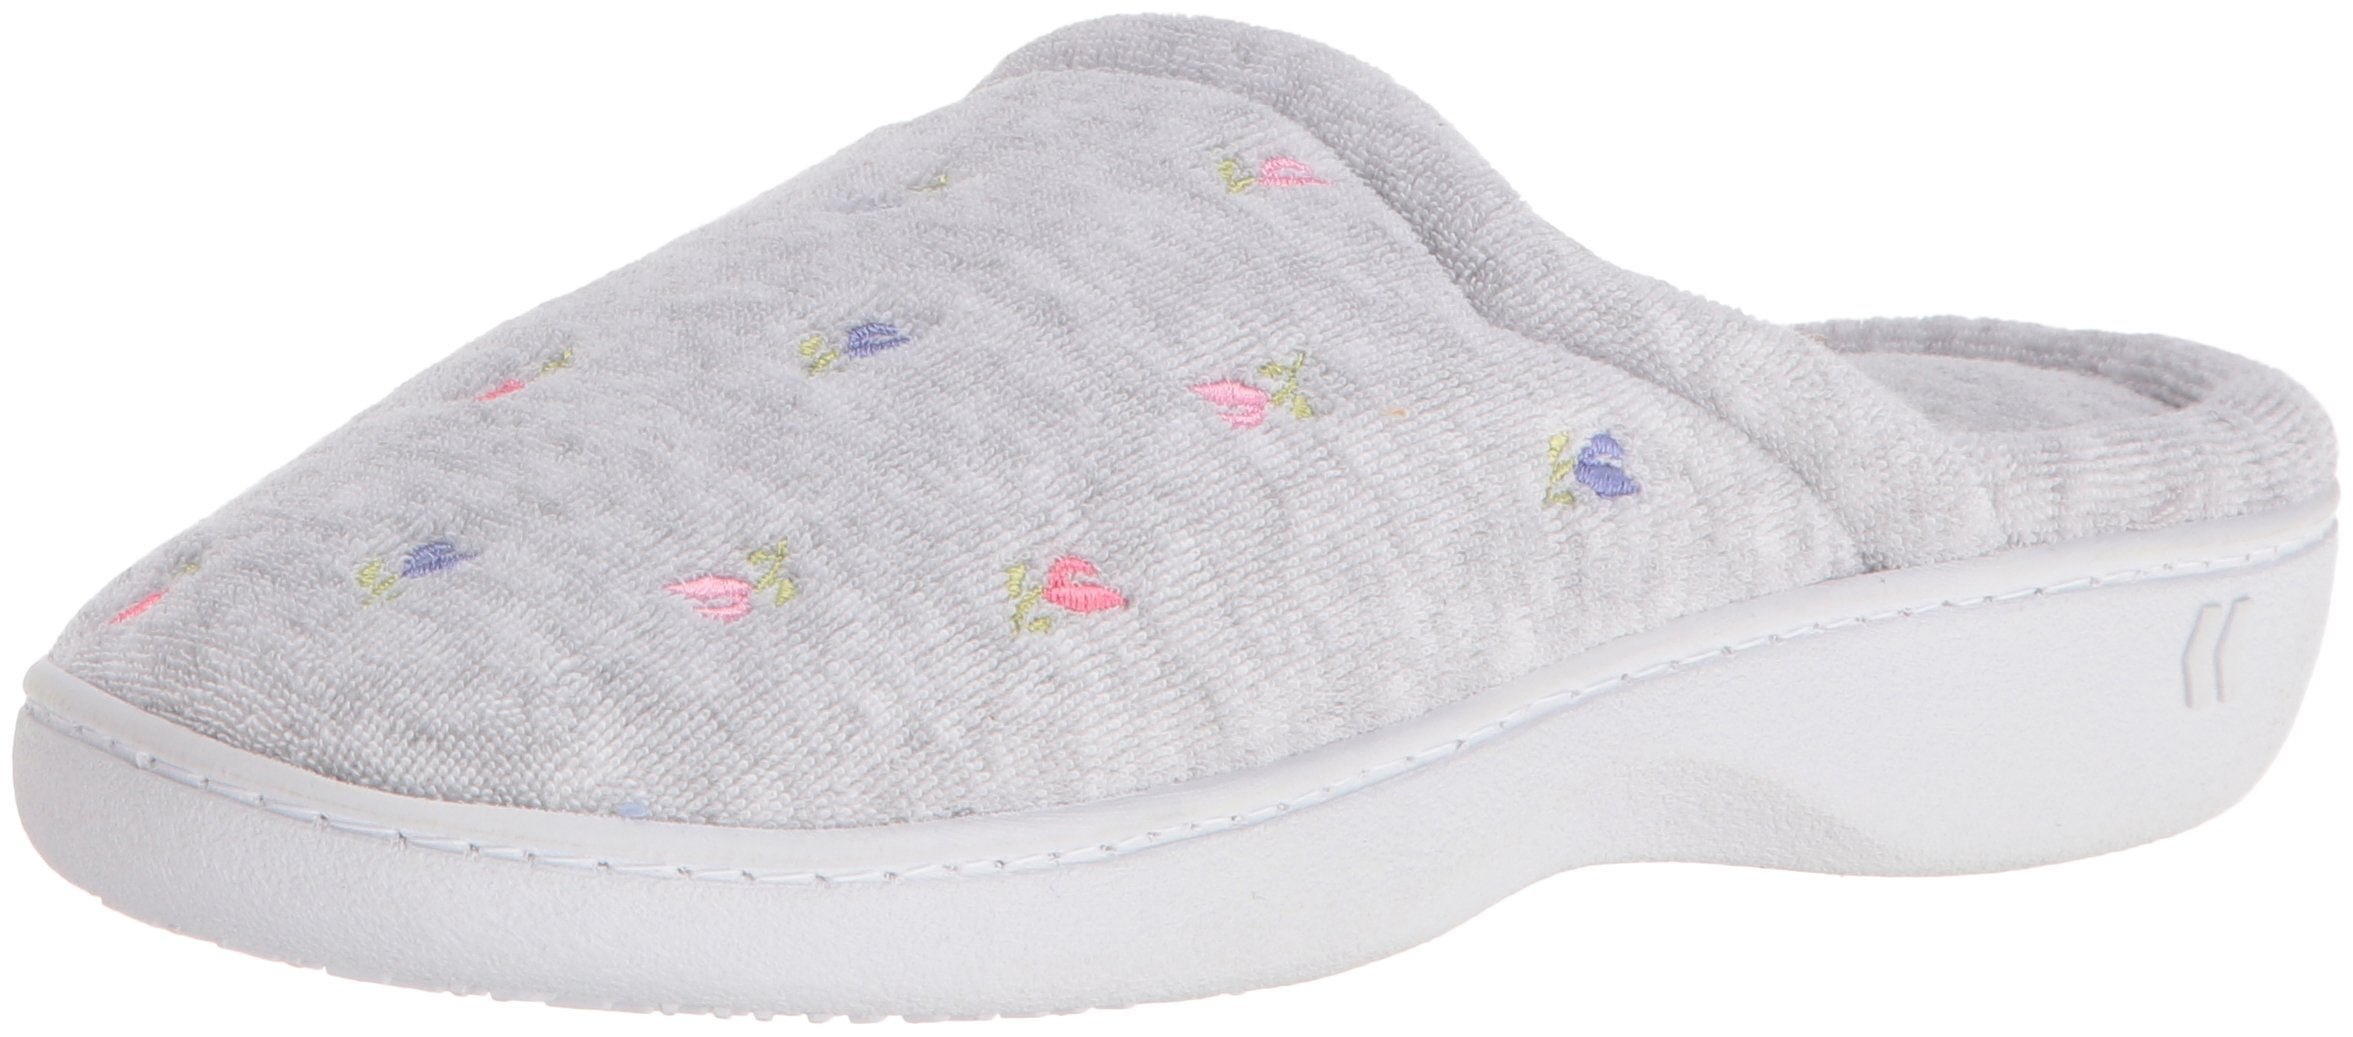 Isotoner Women's Classic Terry Clog Slippers Slip on, Heather Grey Flower, Large / 8.5-9 US